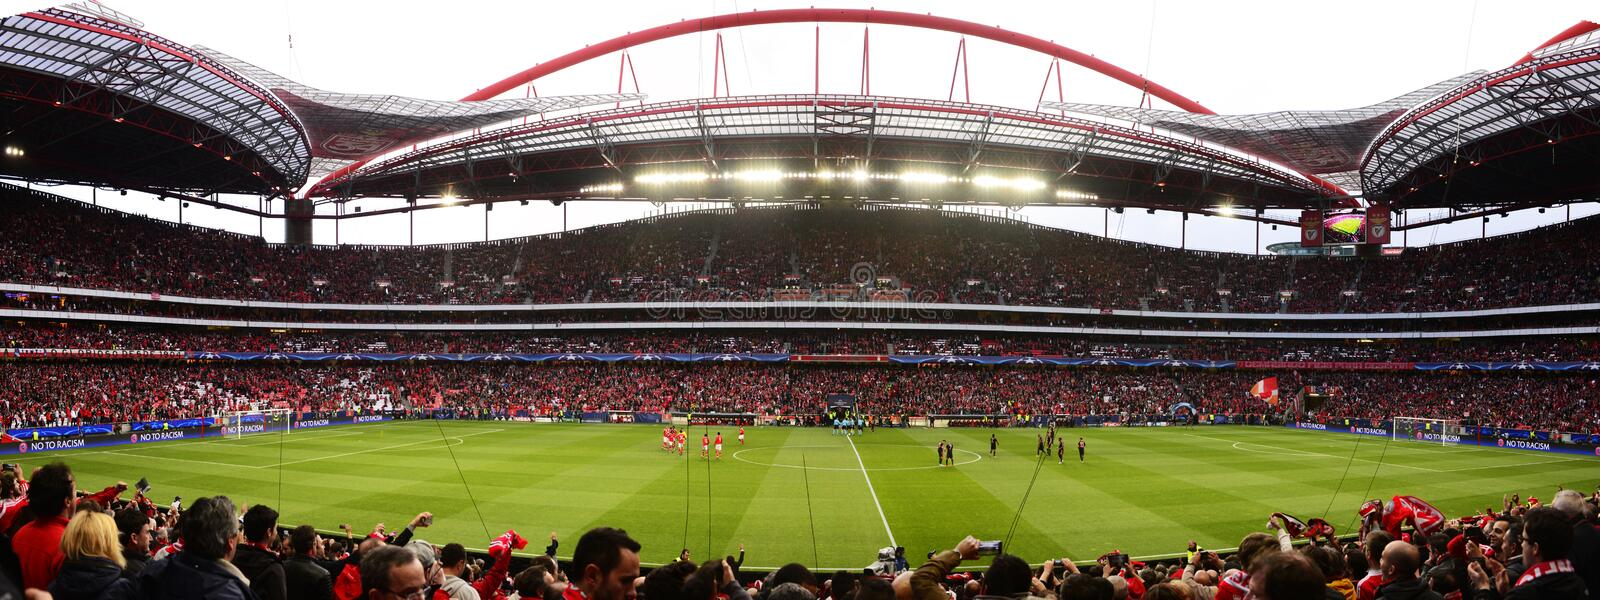 Benfica Soccer Stadium Panorama, European Football Fans, Champions League UEFA stock photography